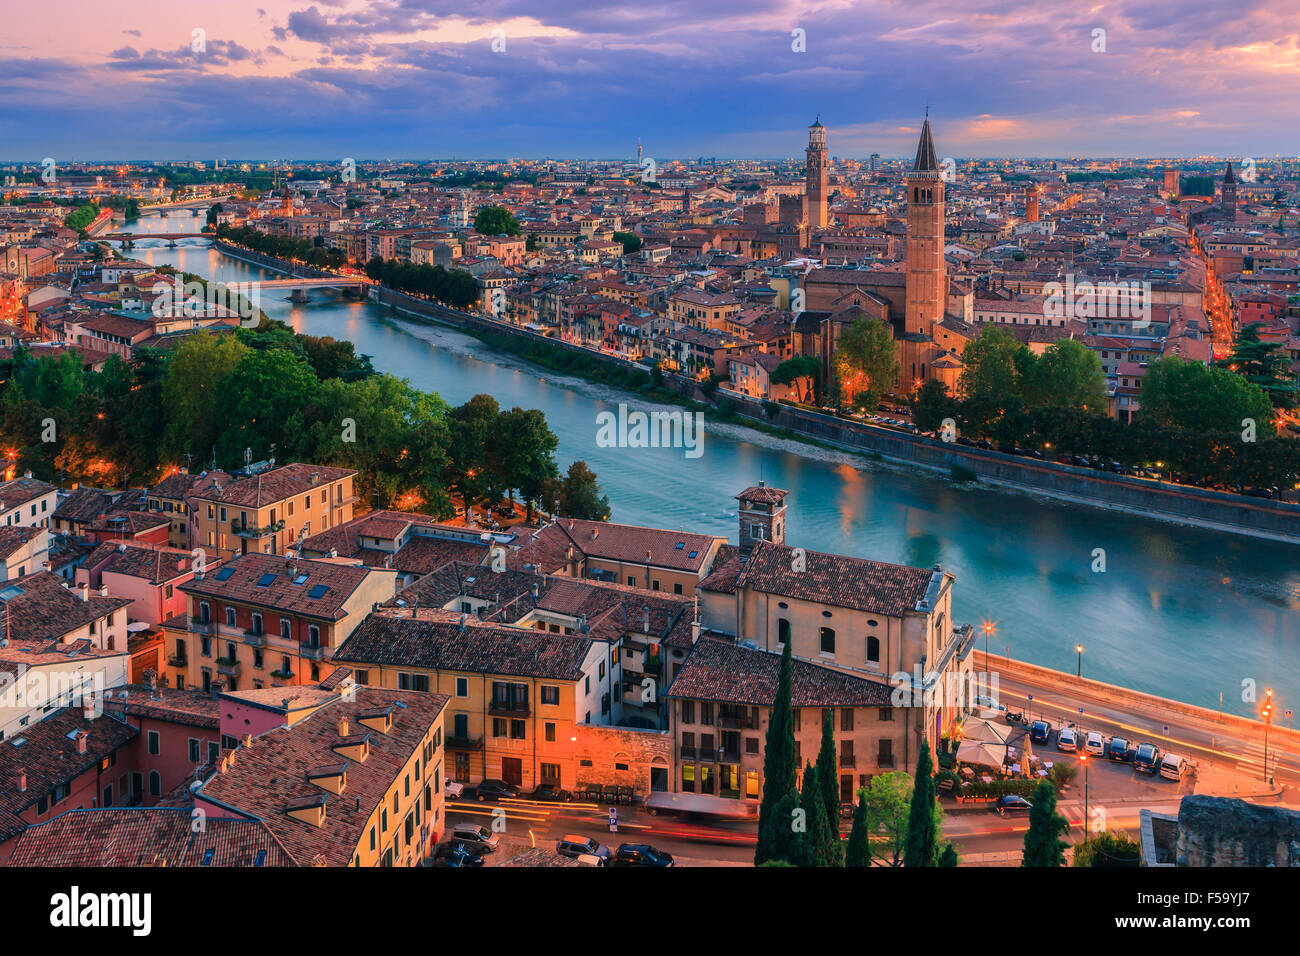 Santa Anastasia church and Torre dei Lamberti at dusk along the Adige river in Verona, Italy. Taken from piazzale - Stock Image